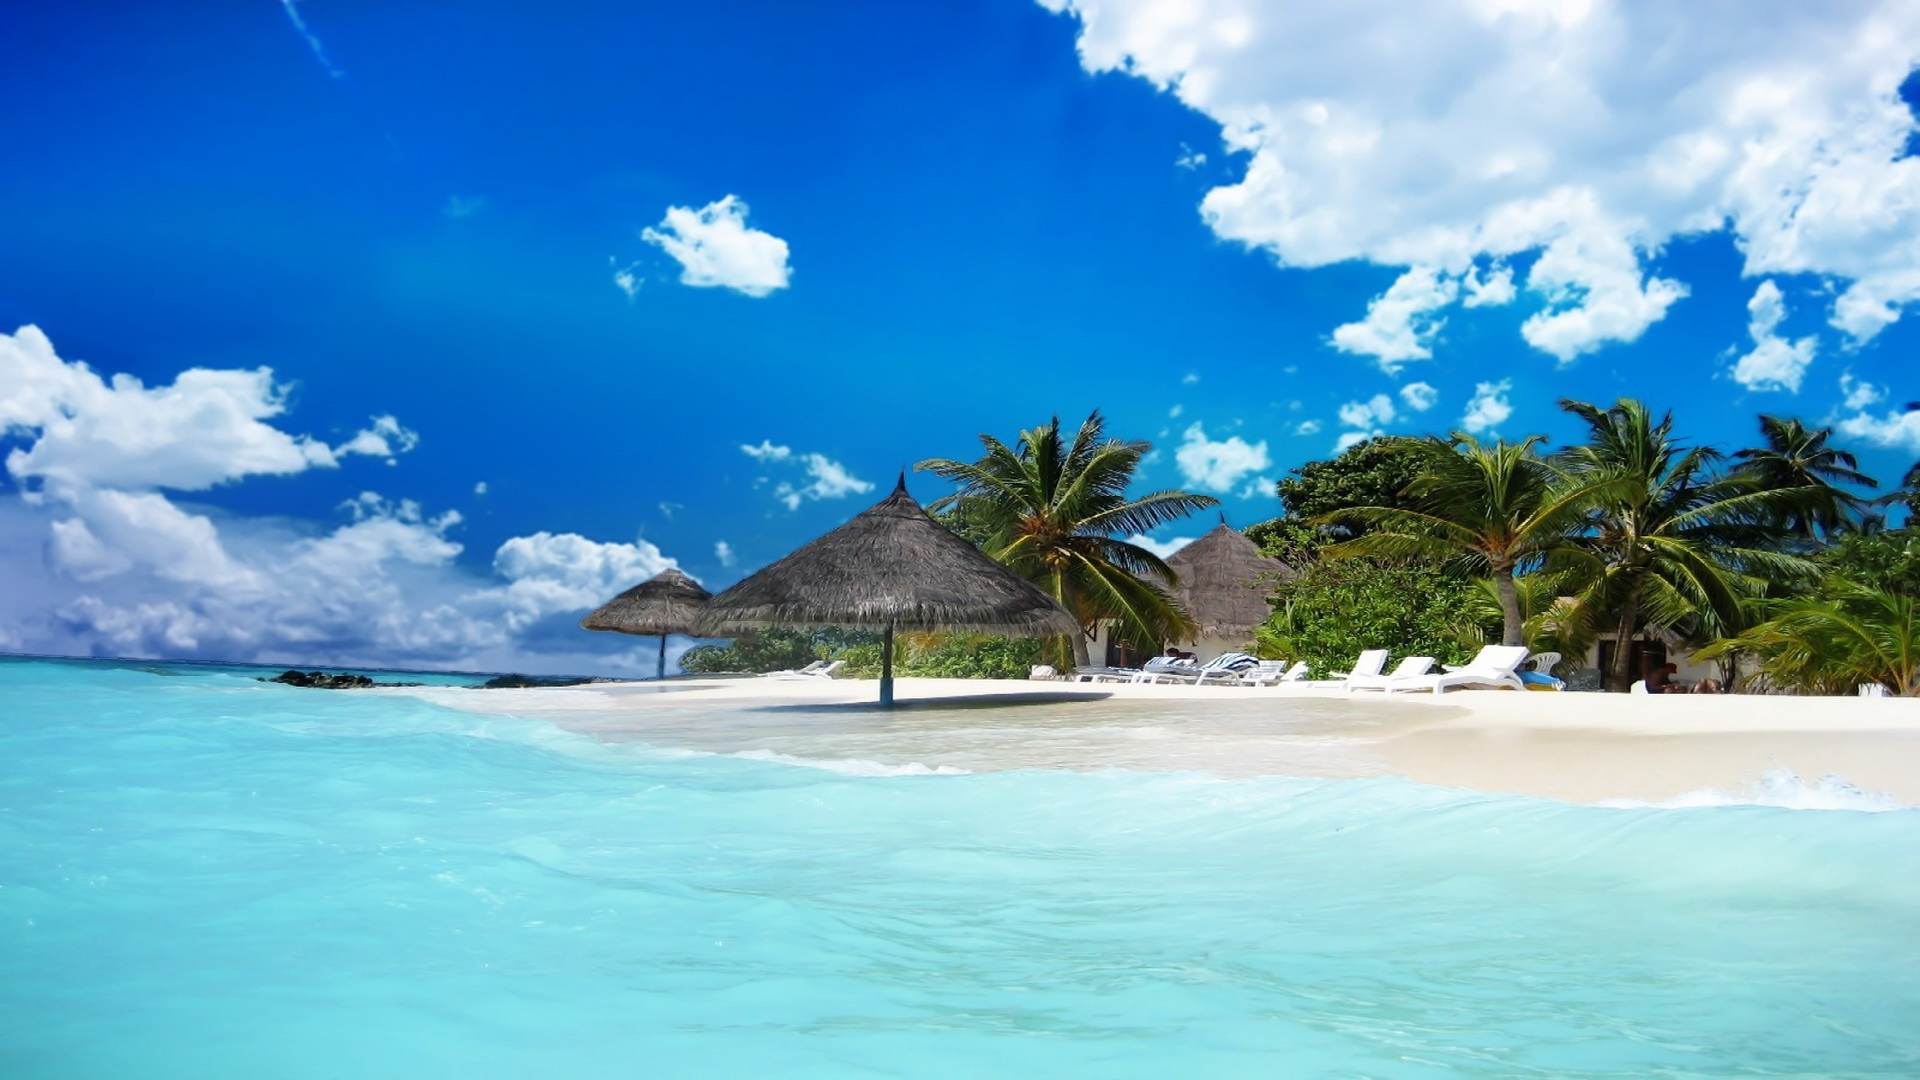 Beach Wallpapers HD Desktop Life Wallpapersjpg 1920x1080